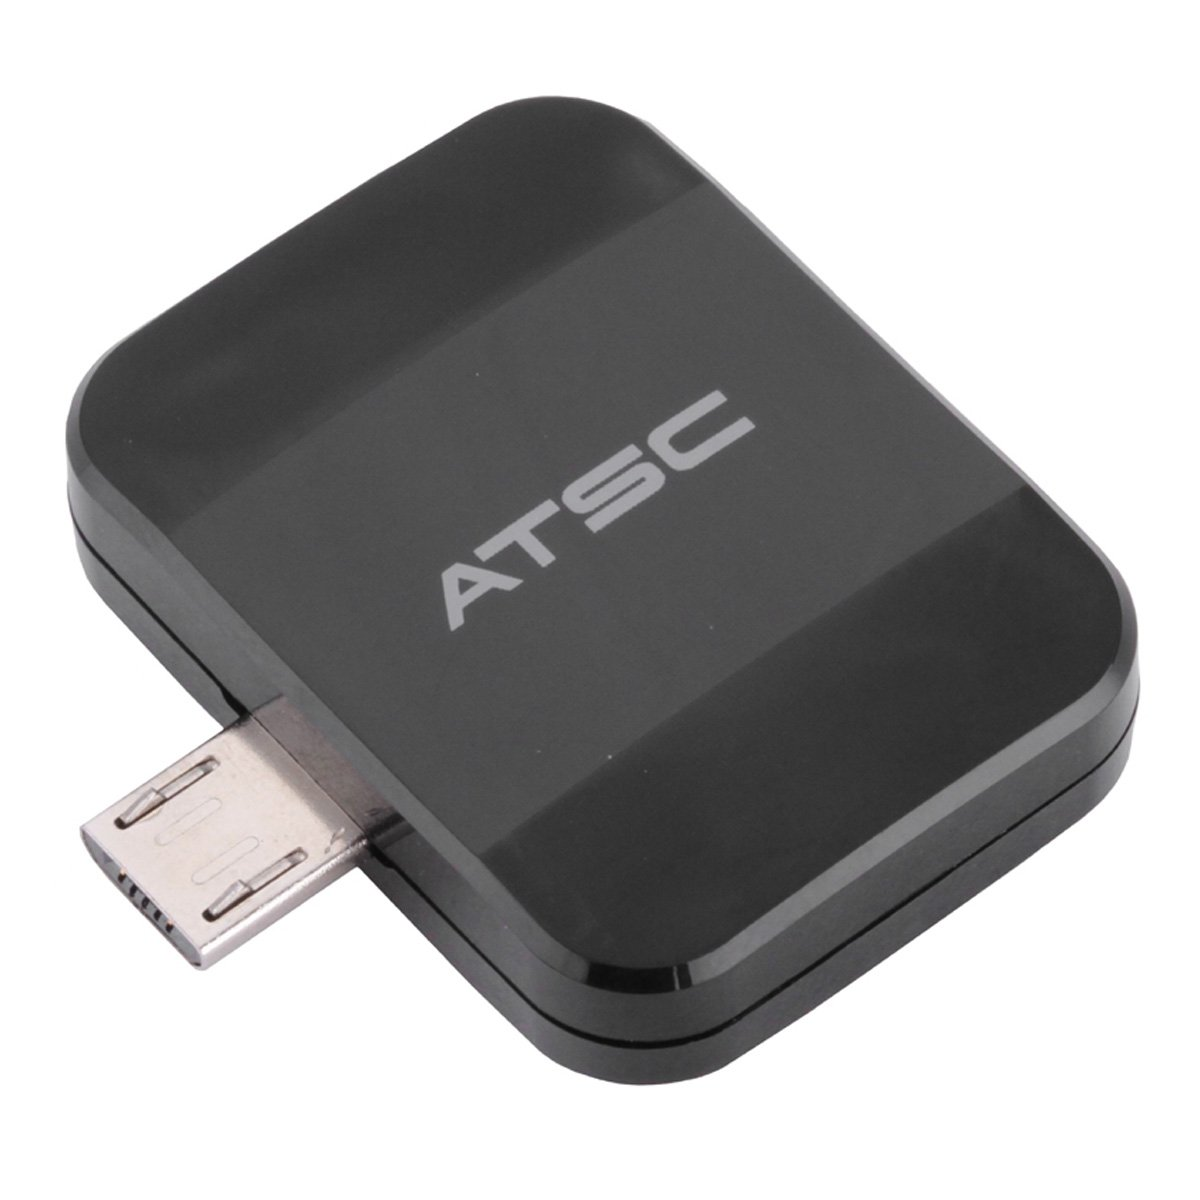 AVOLUTION Micro USB ATSC Digital TV Receiver Tuner for Android Phone/Tablet PC with OTG